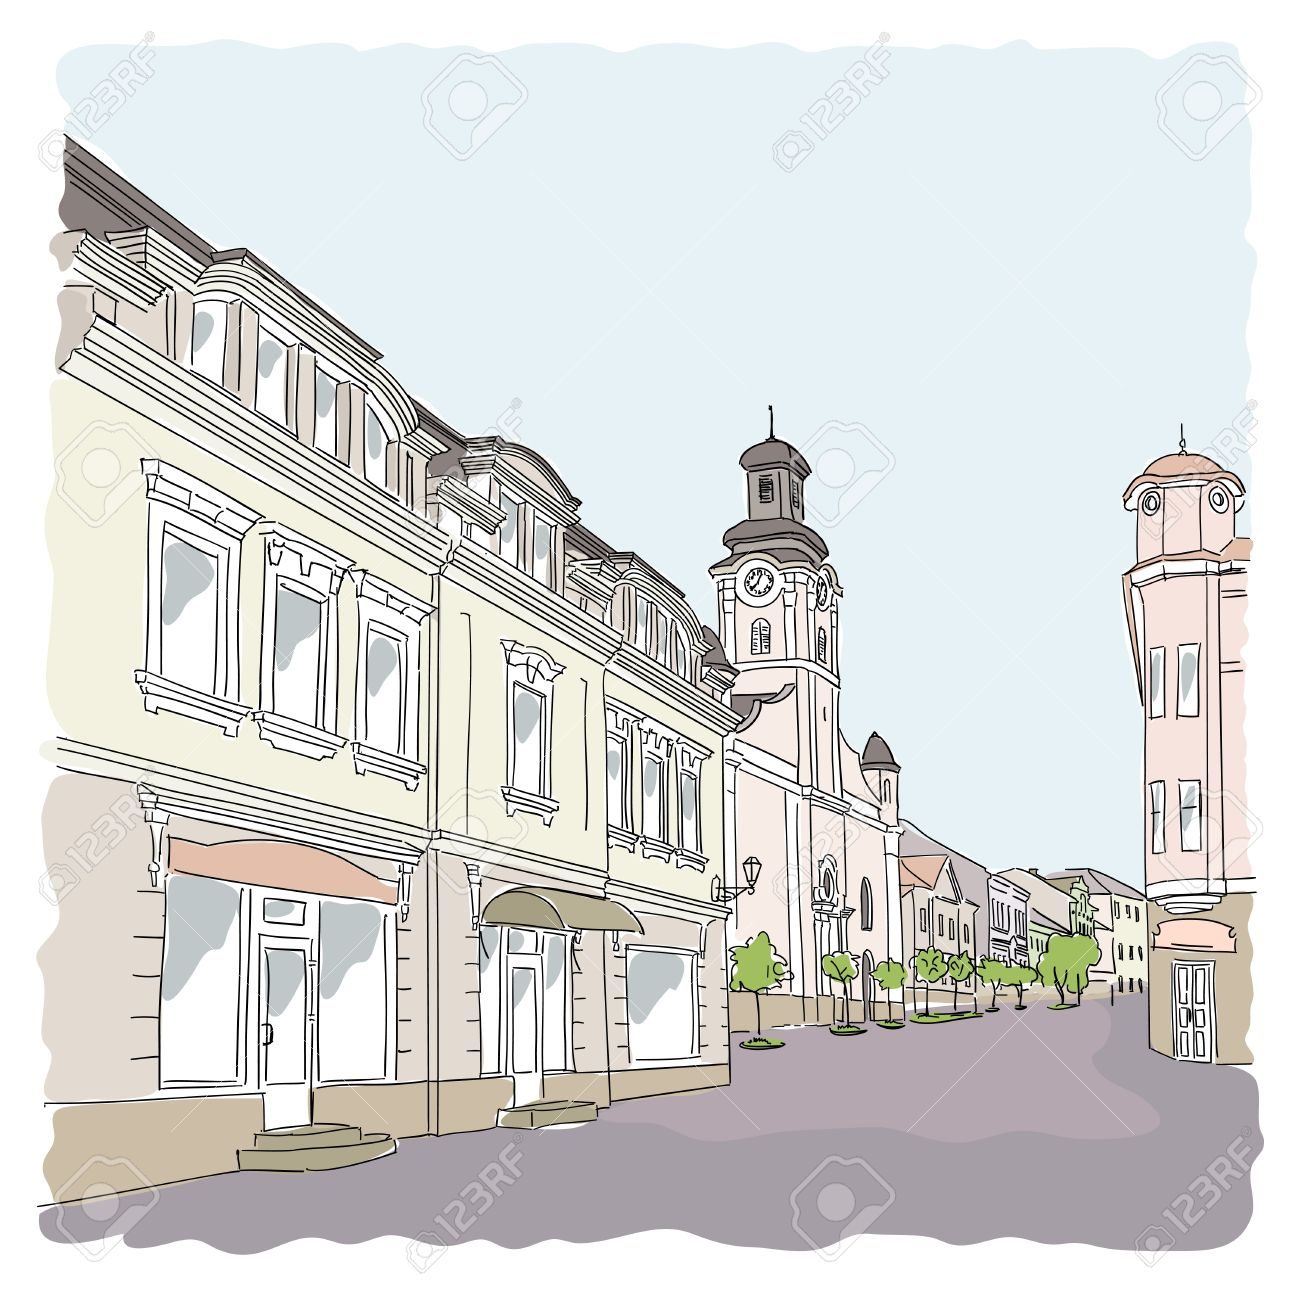 Street In The Old Town. Royalty Free Cliparts, Vectors, And Stock.